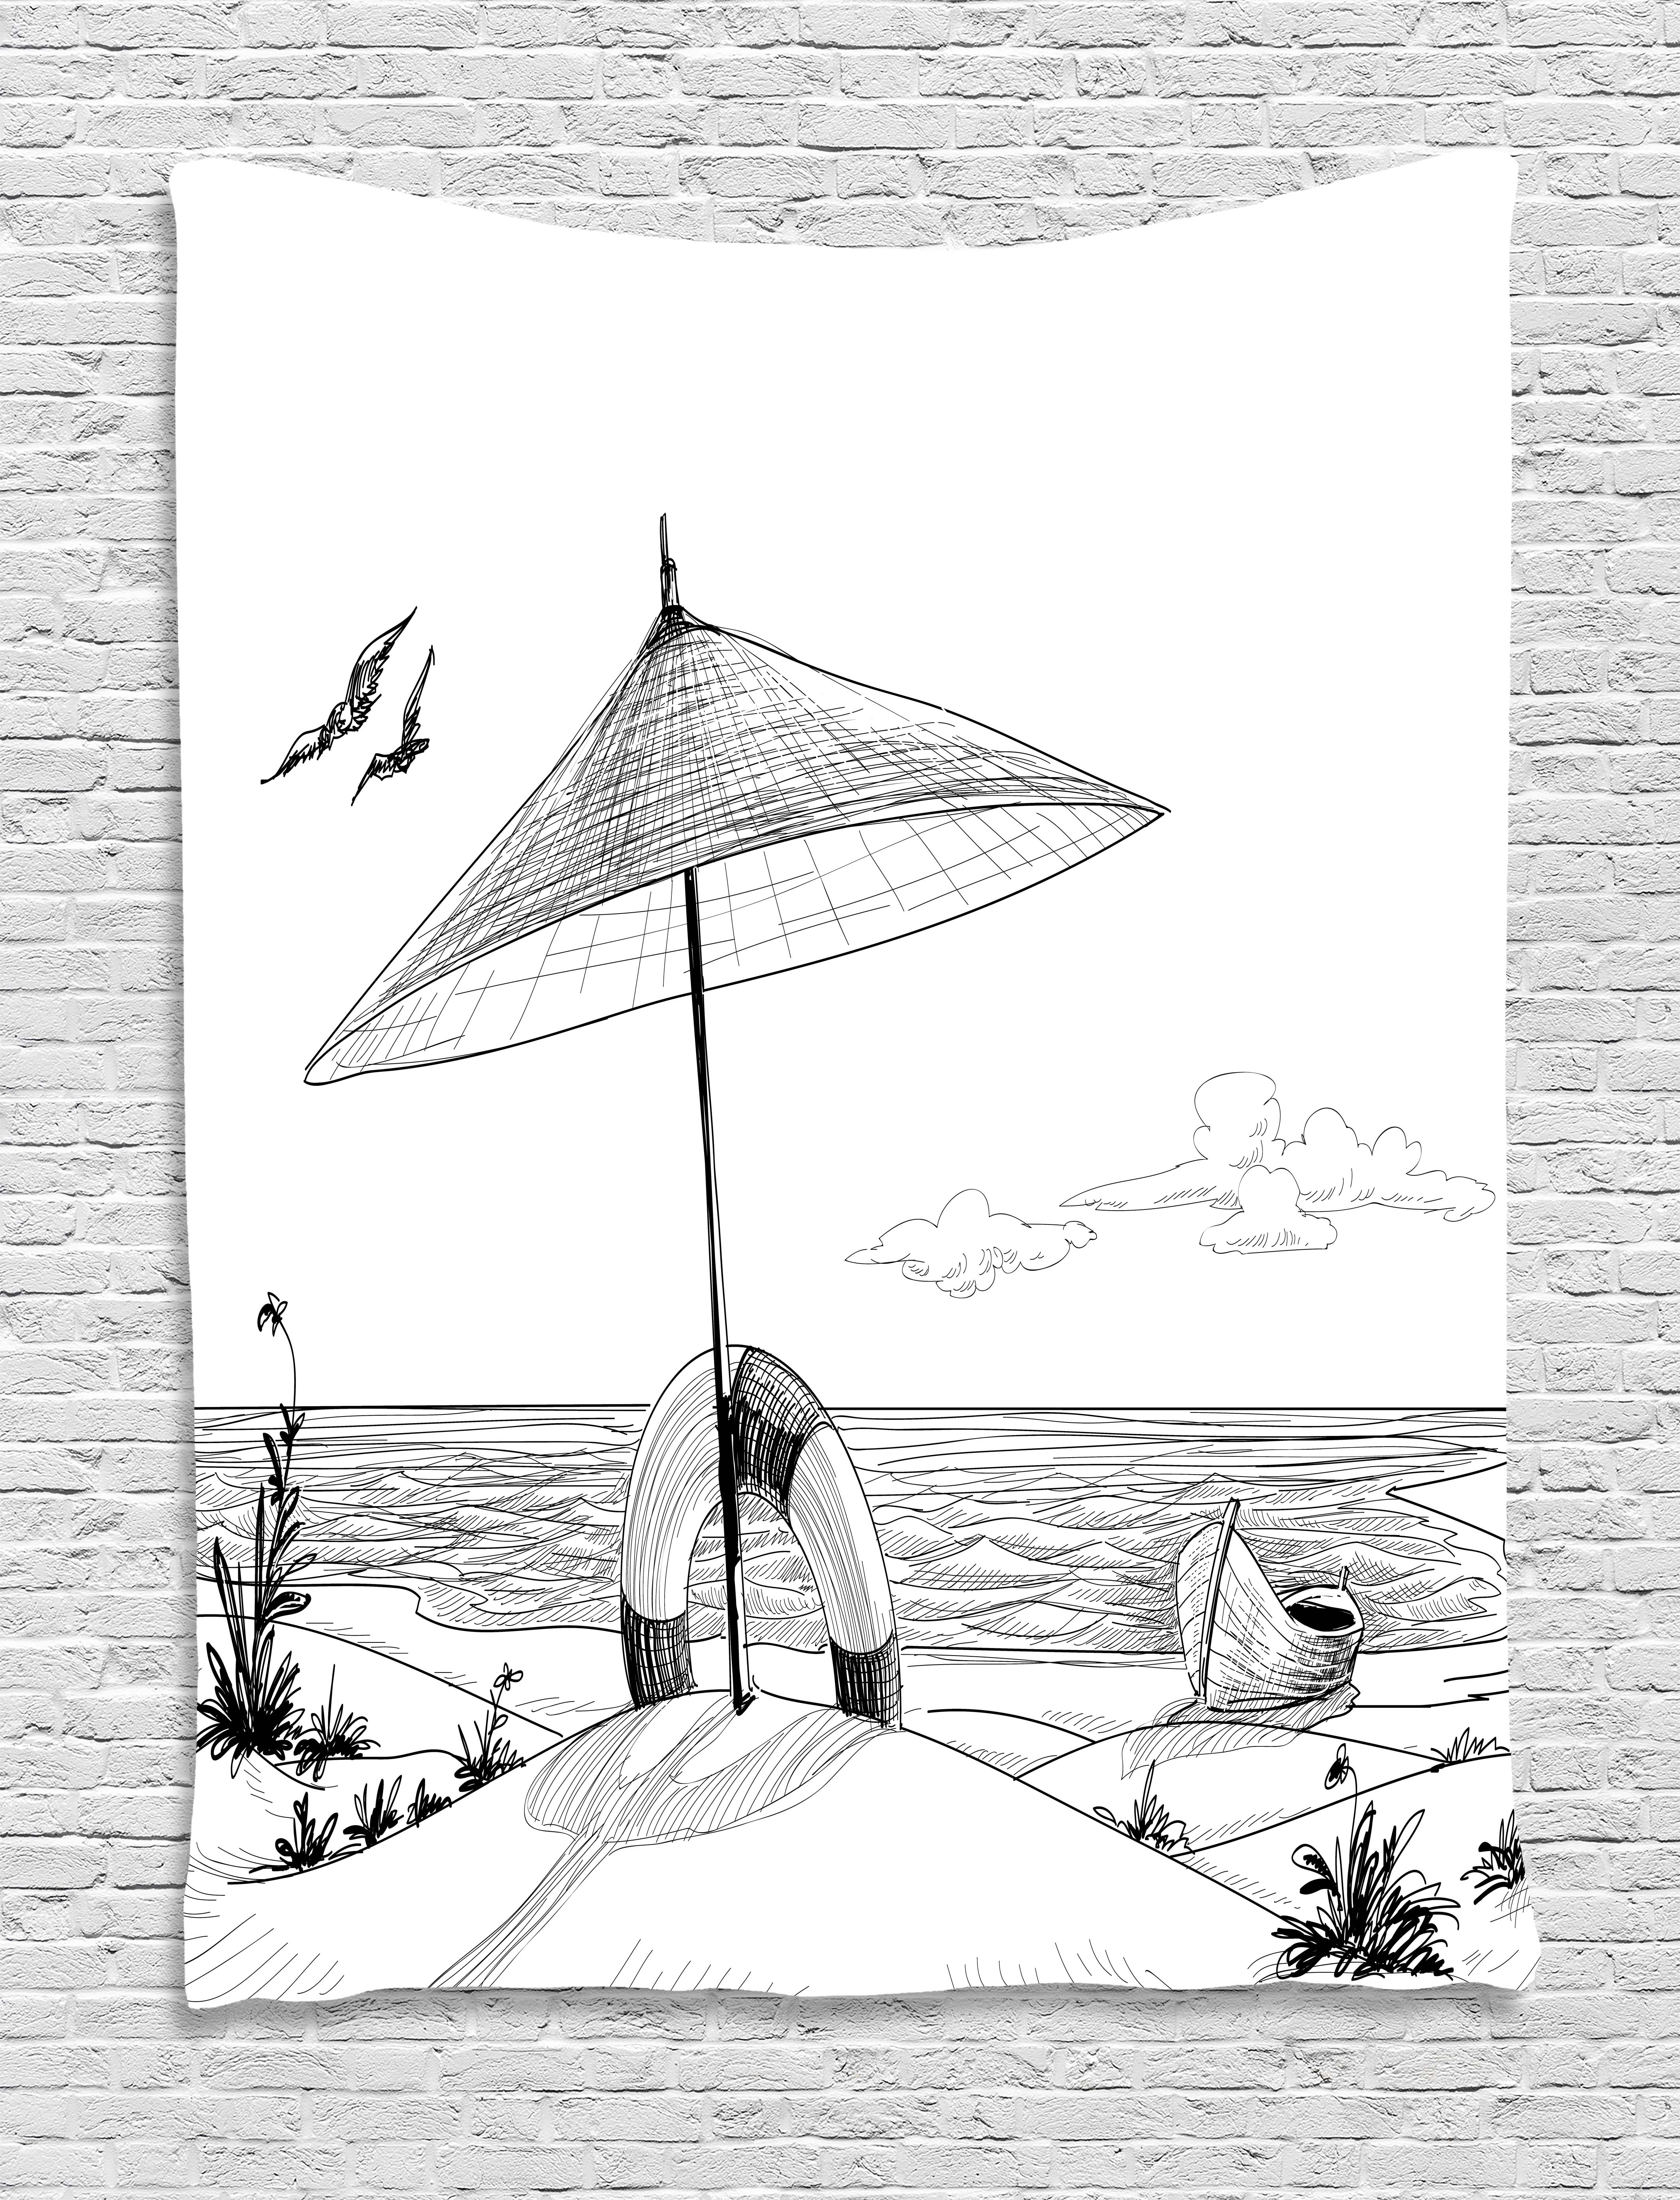 Beach tapestry doodle style sketch pattern monochrome illustration ocean and boat pencil drawing wall hanging for bedroom living room dorm decor